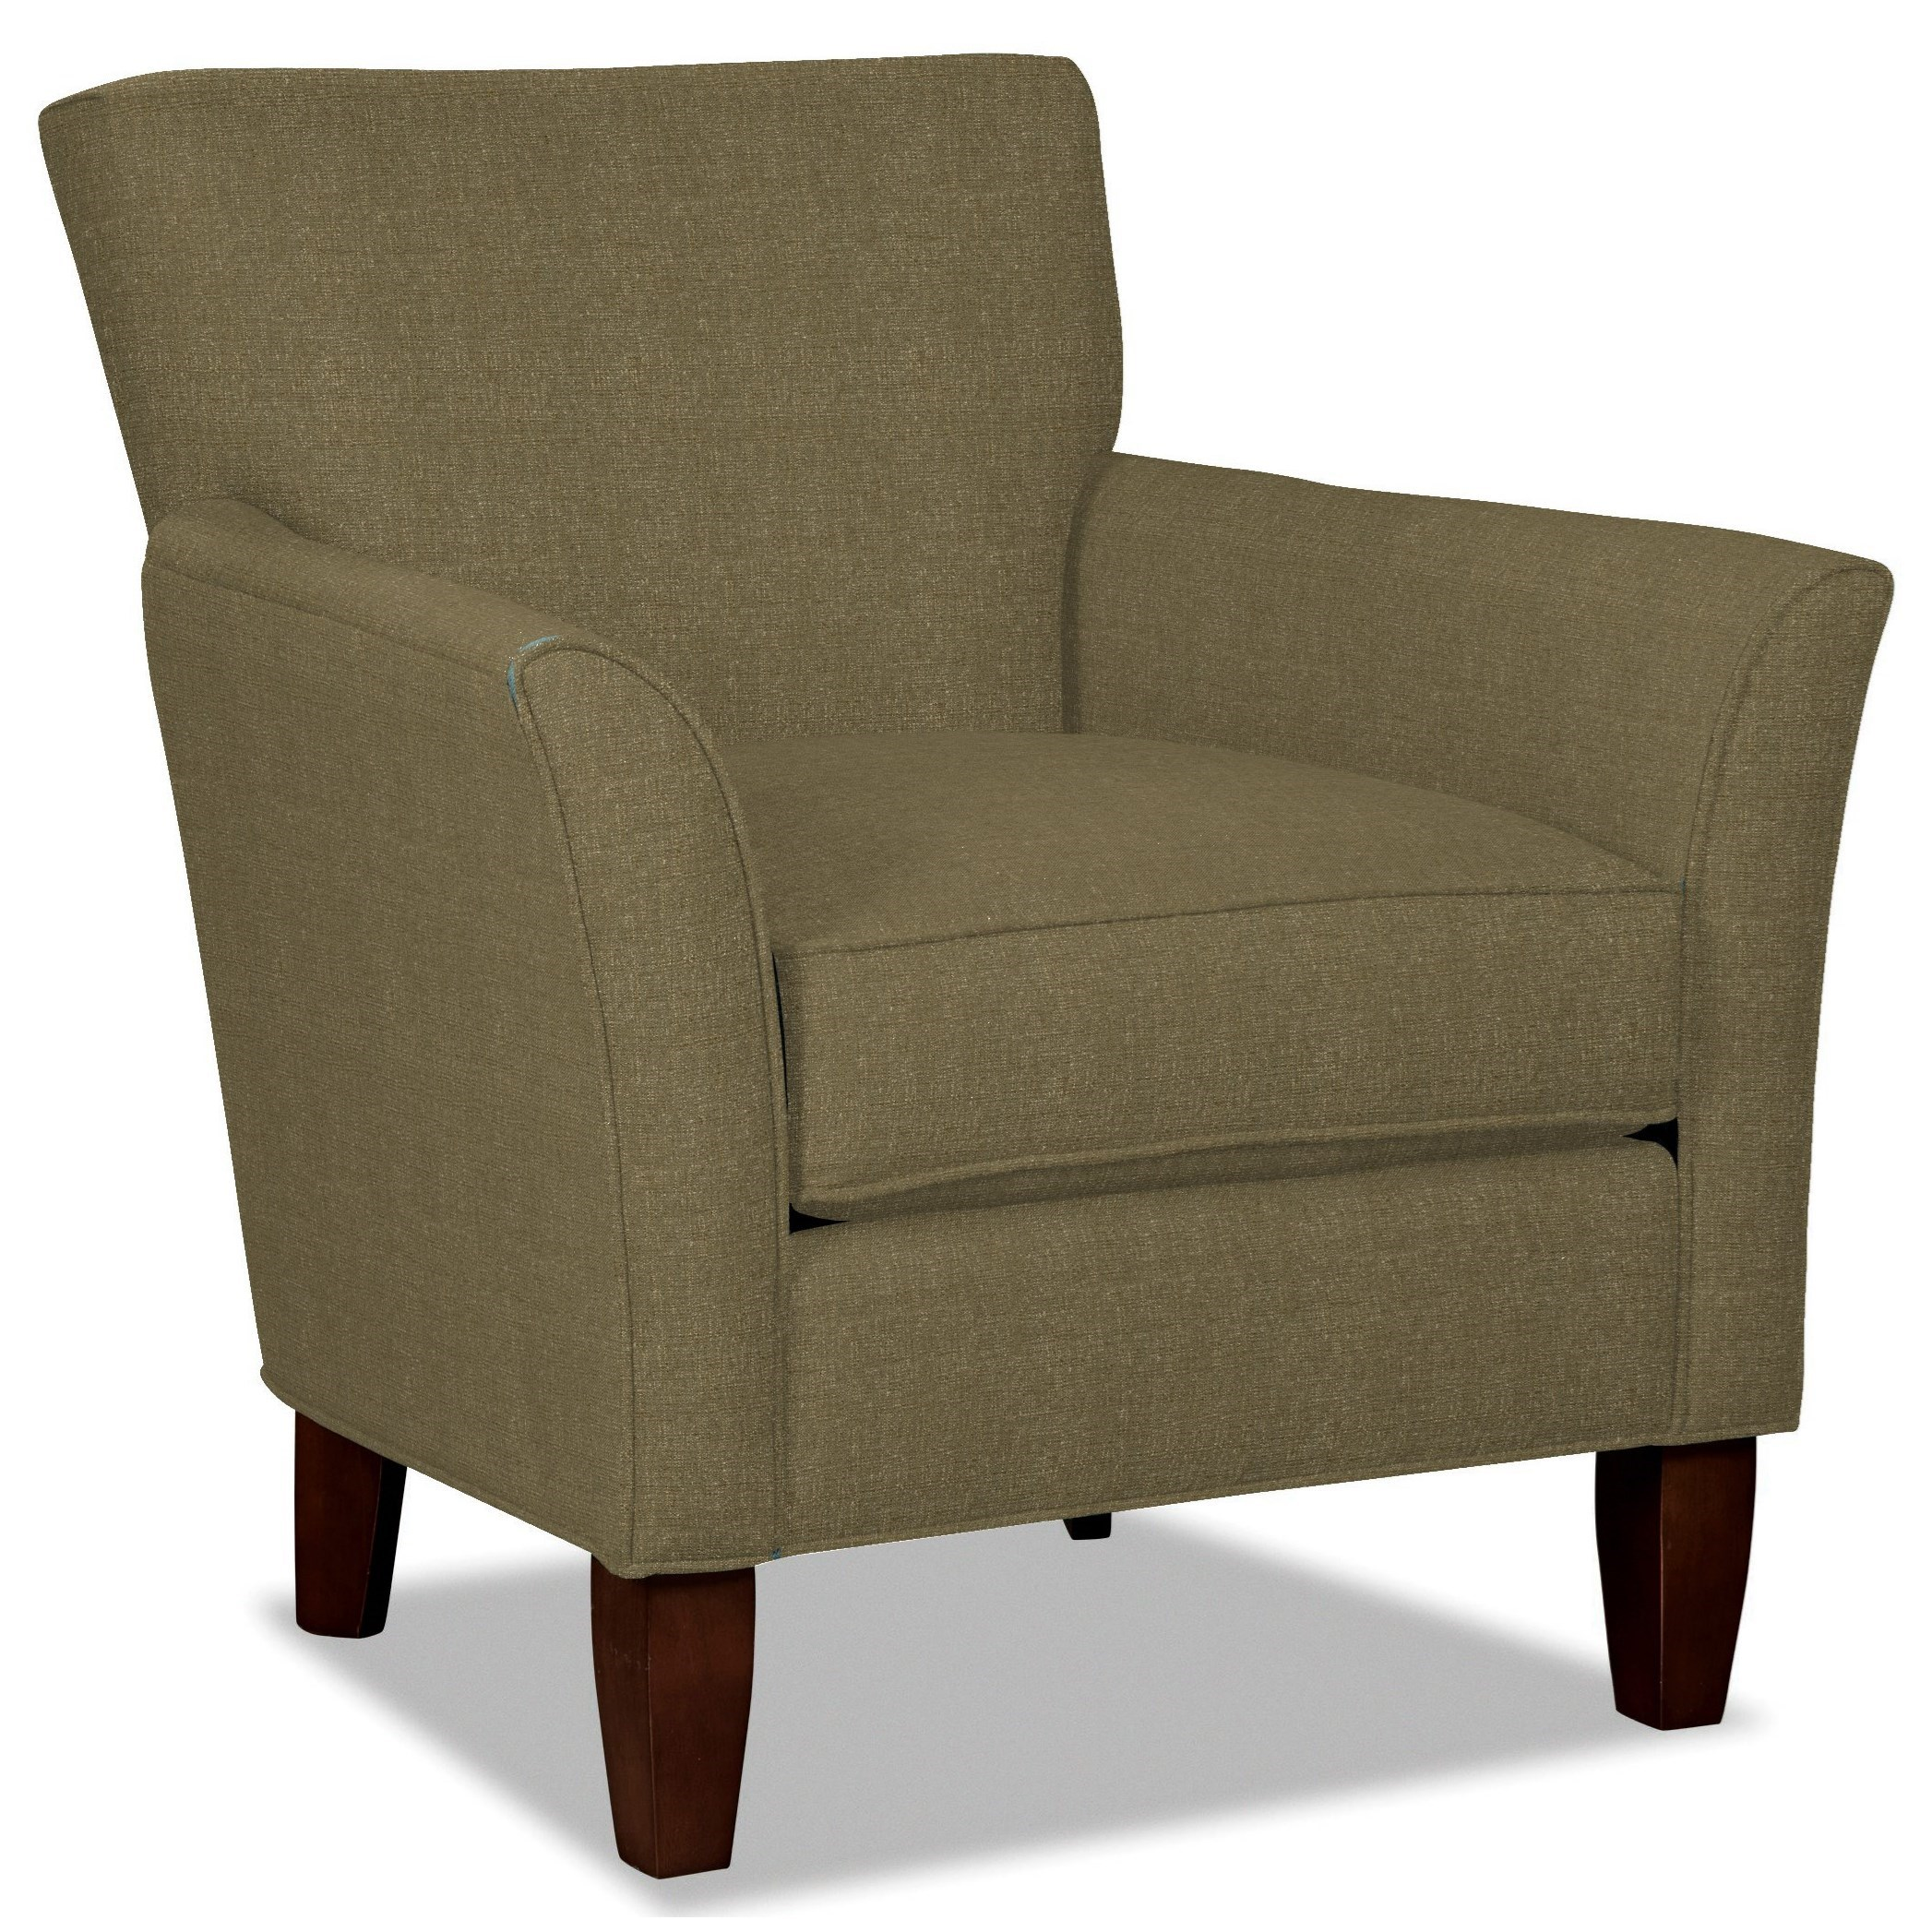 Craftmaster 060110 Accent Chair - Item Number: 060110-SUGARSHACK-21